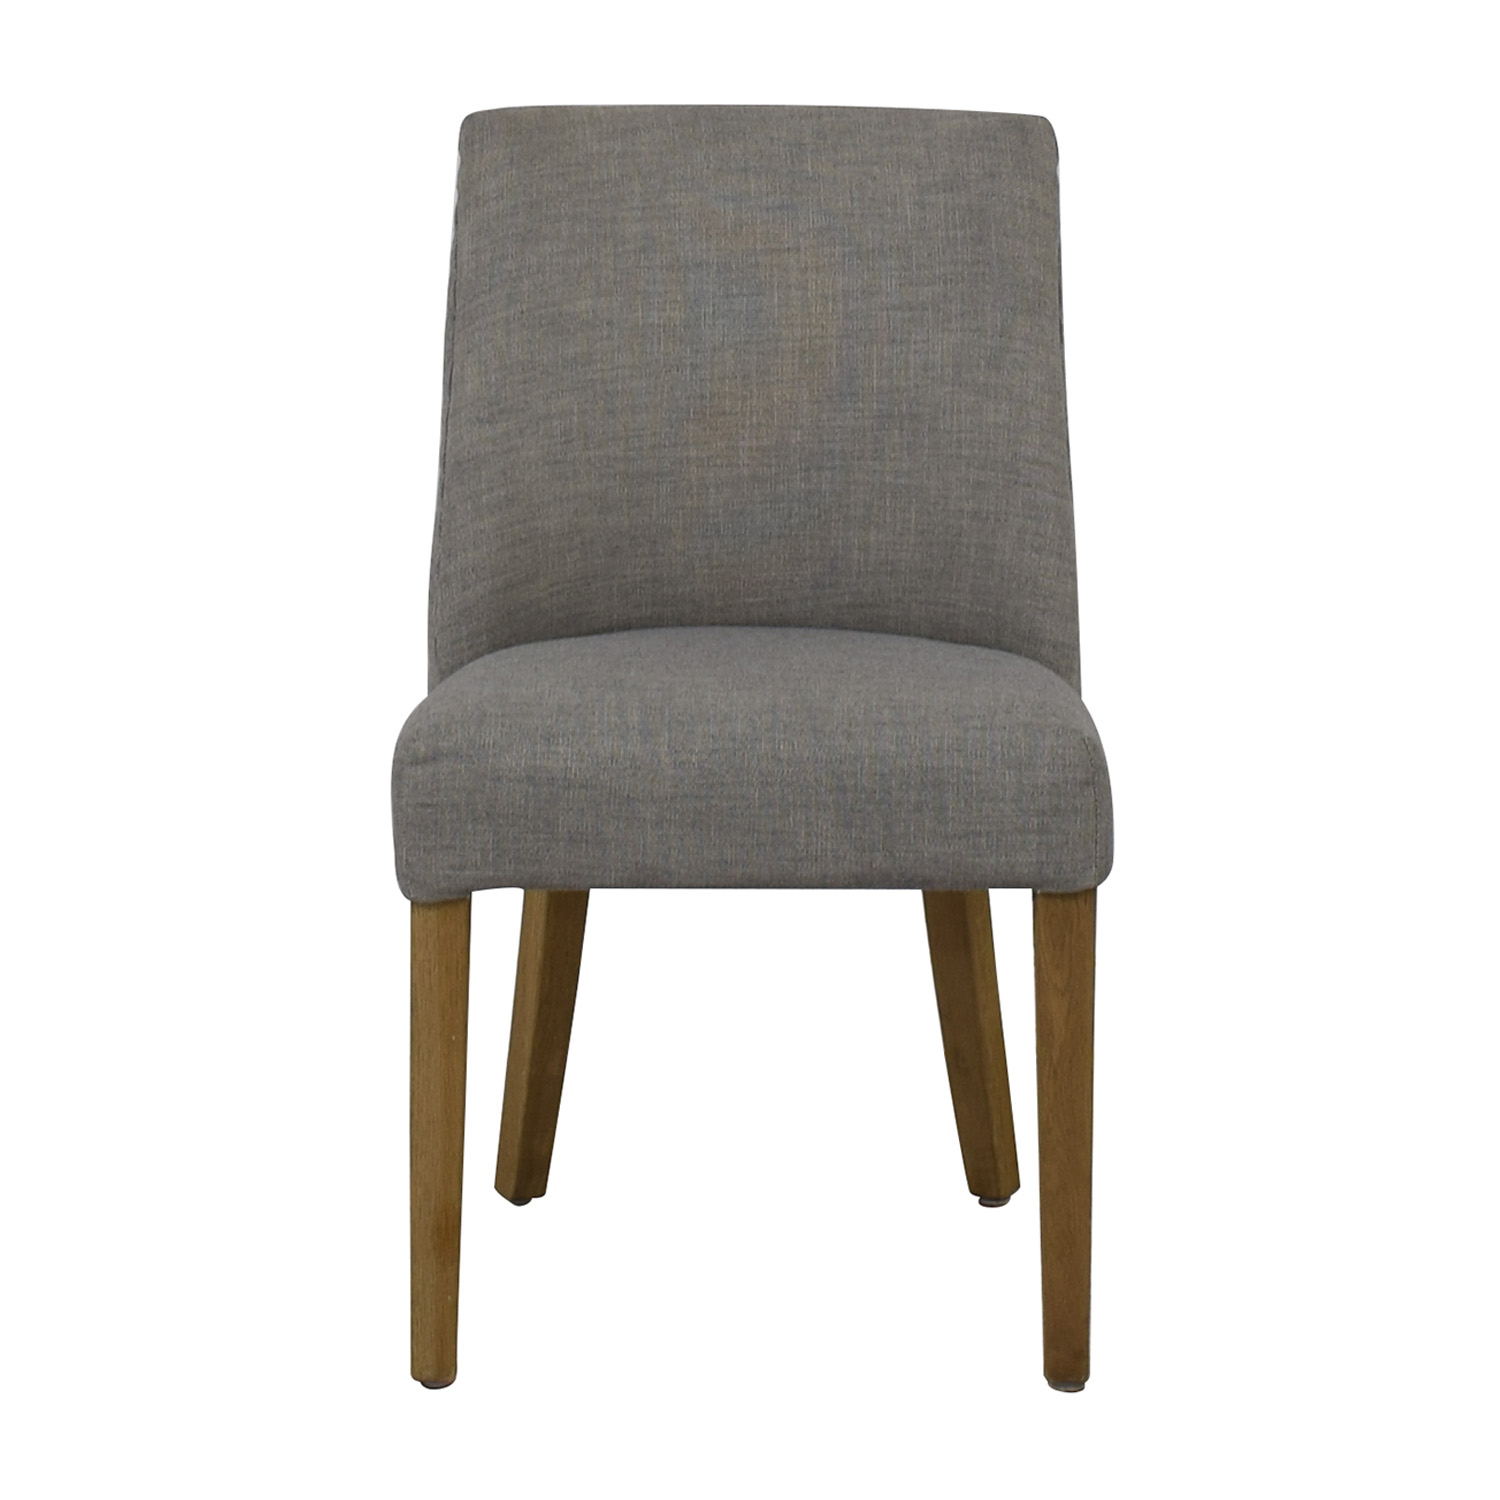 Restoration Hardware 1940S French Barrelback Fabric Side Chair sale